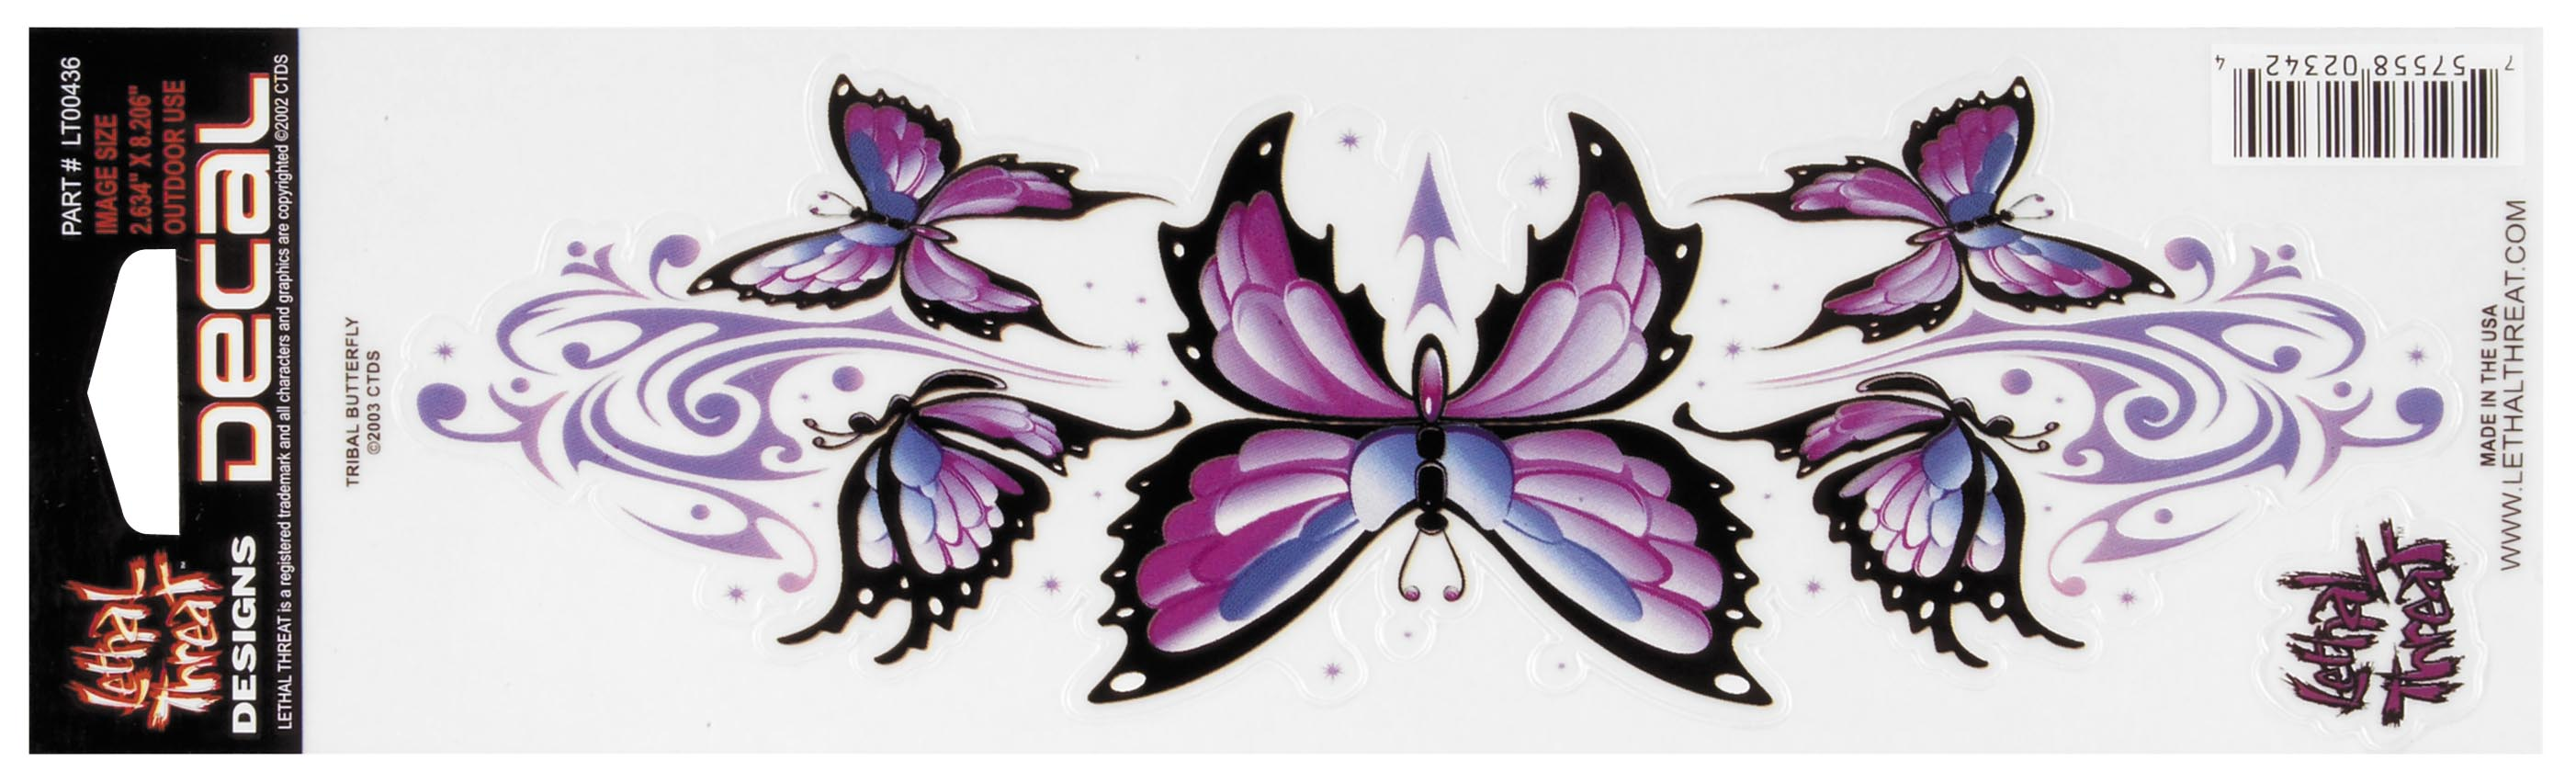 Lethal Threat Purple Butterfly Decal